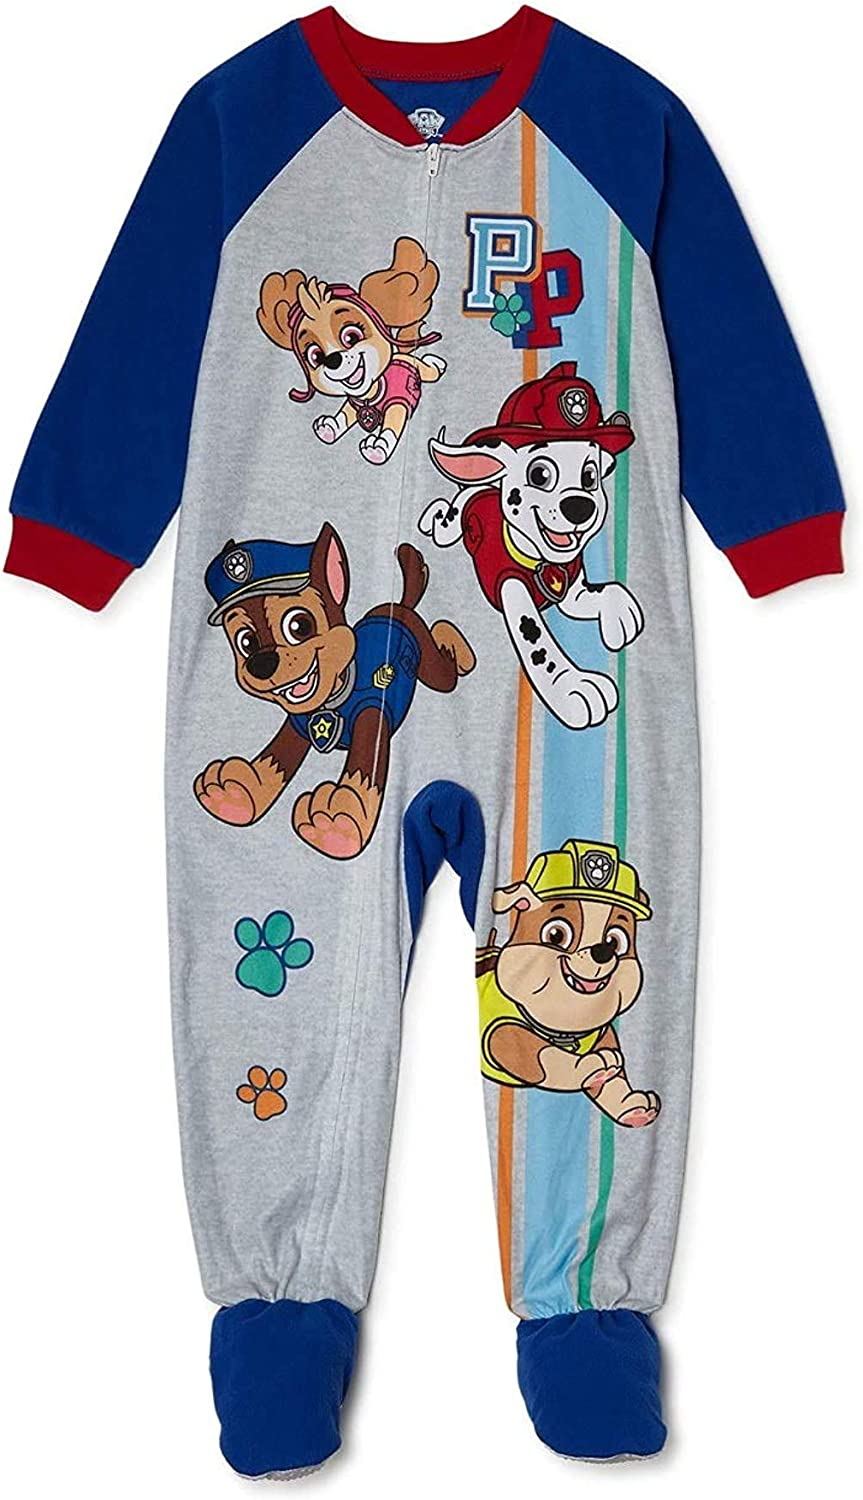 Paw Spring new work one after another Patrol Discount mail order Pup Power Toddler Boy Microfleece Paj Blanket Sleeper